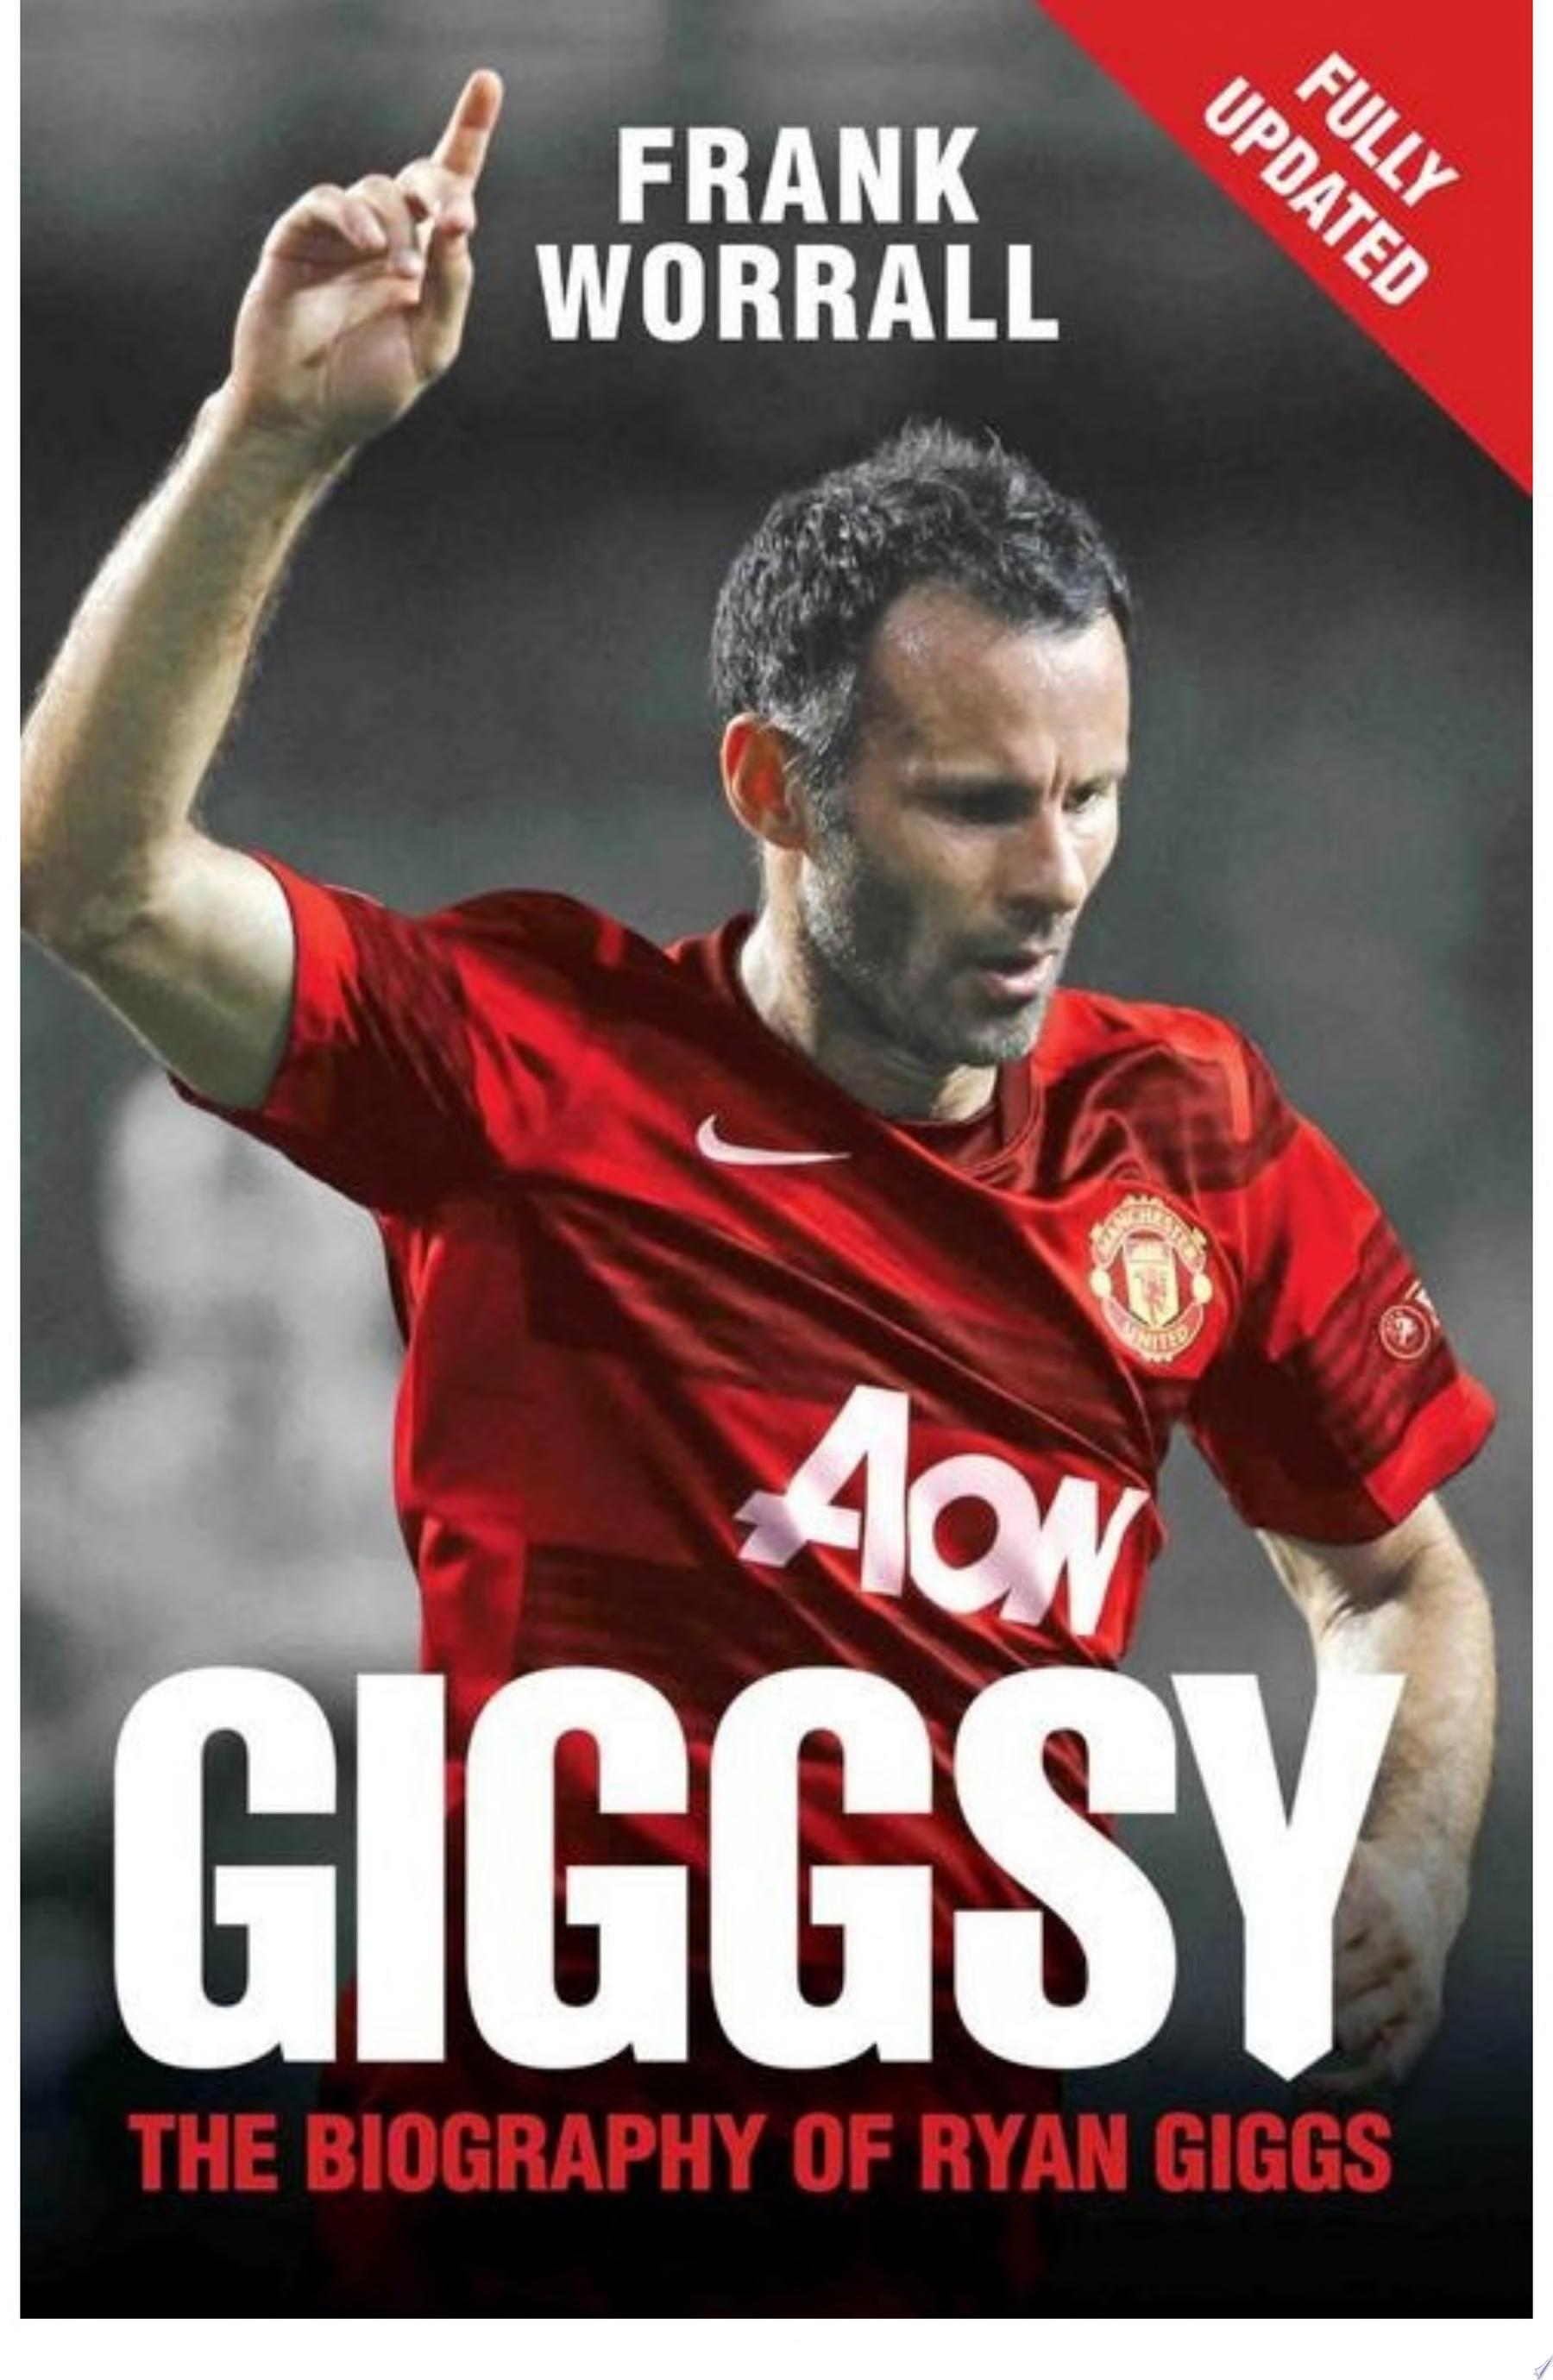 Giggsy   The Biography of Ryan Giggs